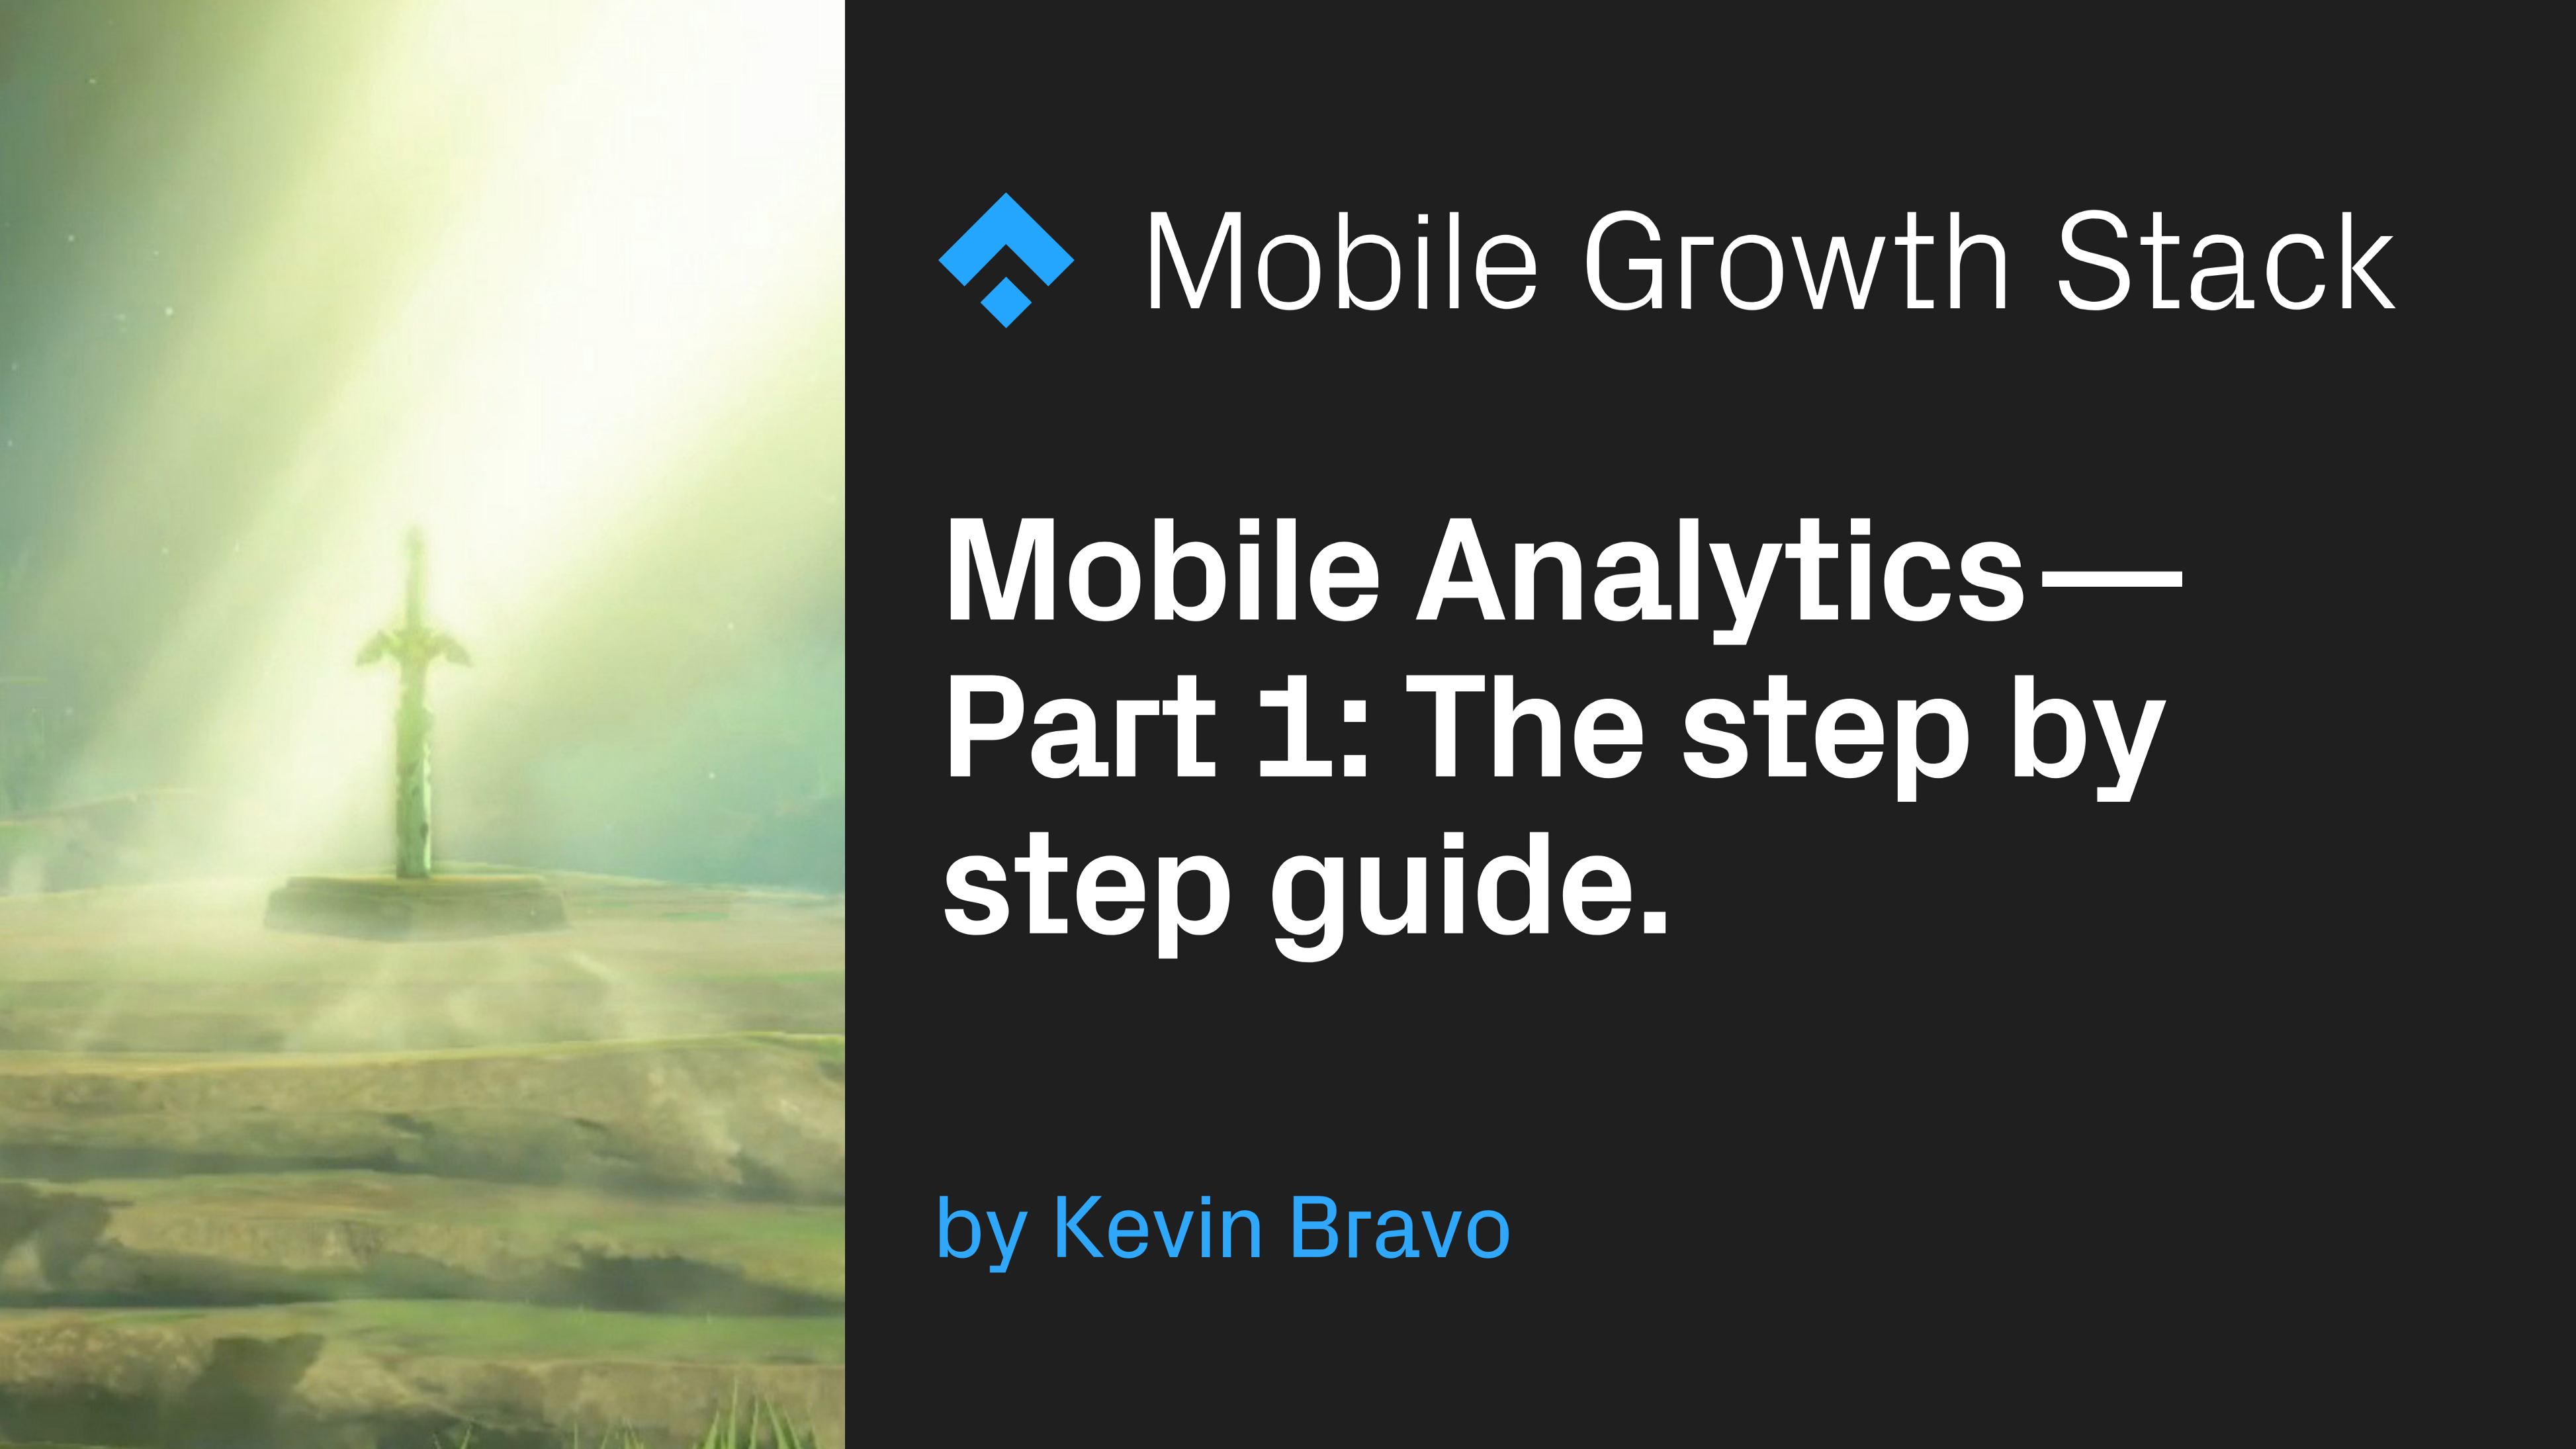 Mobile Analytics — Part 1: The step by step guide.